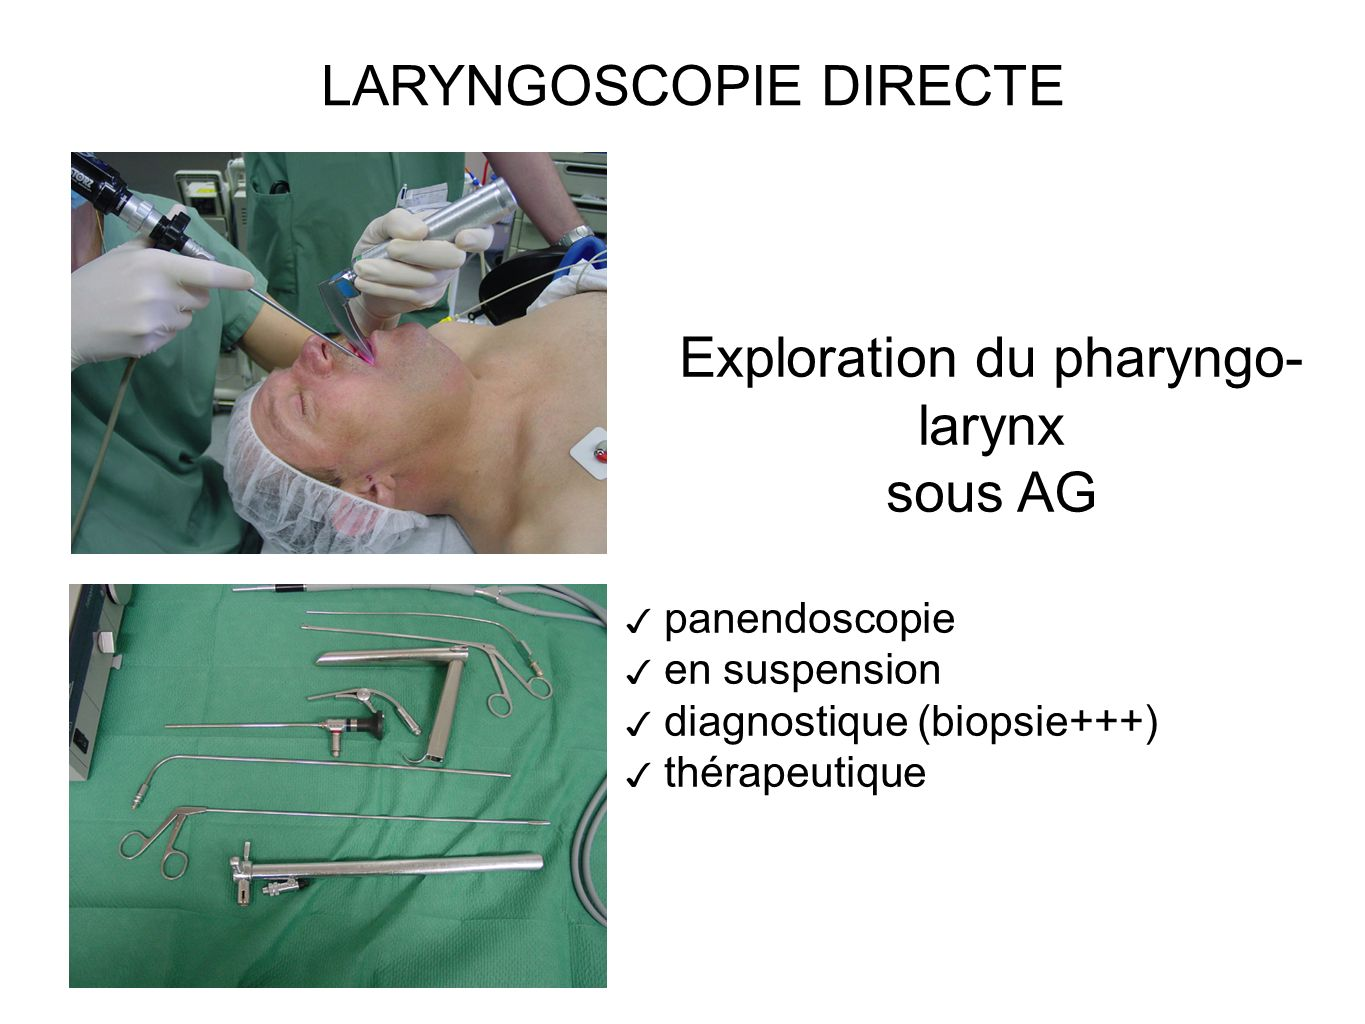 Exploration du pharyngo- larynx sous AG panendoscopie en suspension diagnostique (biopsie+++) thérapeutique LARYNGOSCOPIE DIRECTE